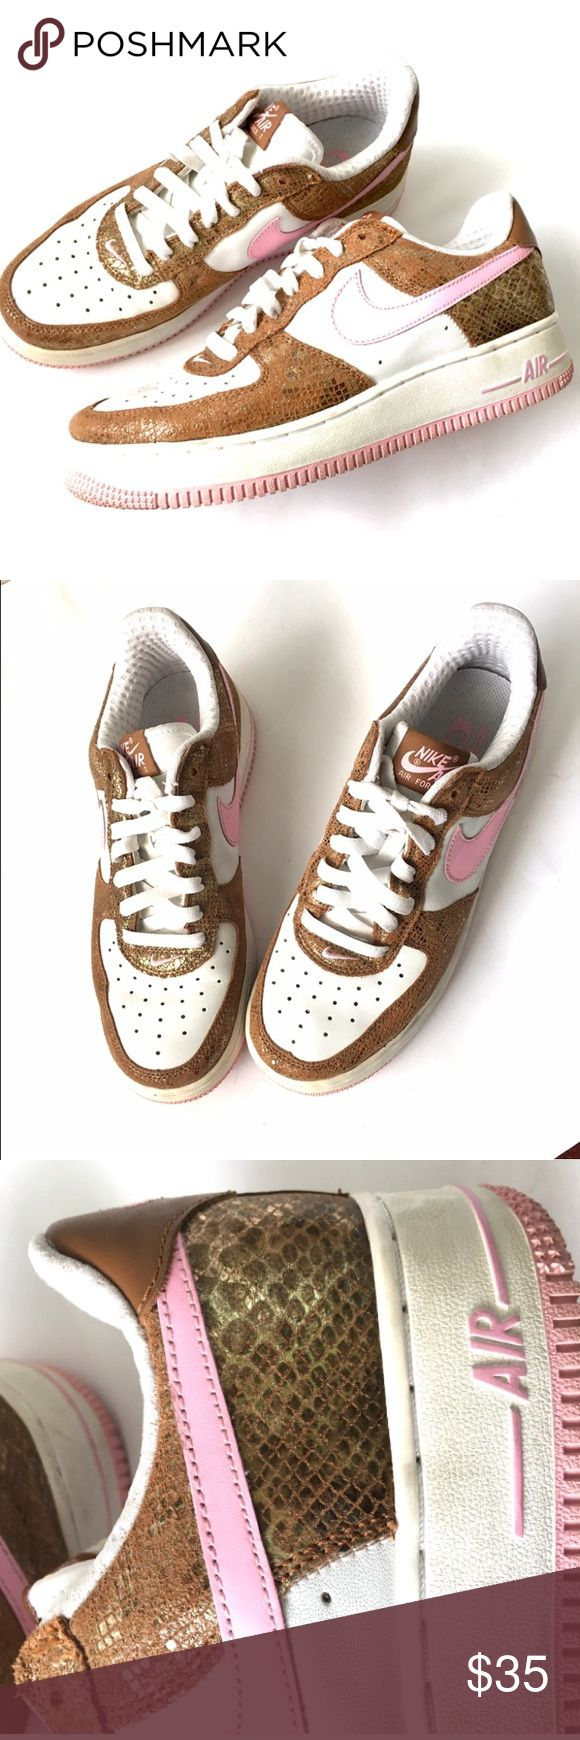 Nike Air pink white bronze snake size 8.5 Cute shoes in great condition. Skater style. Pet and smoke free home. Nike Shoes Athletic Shoes